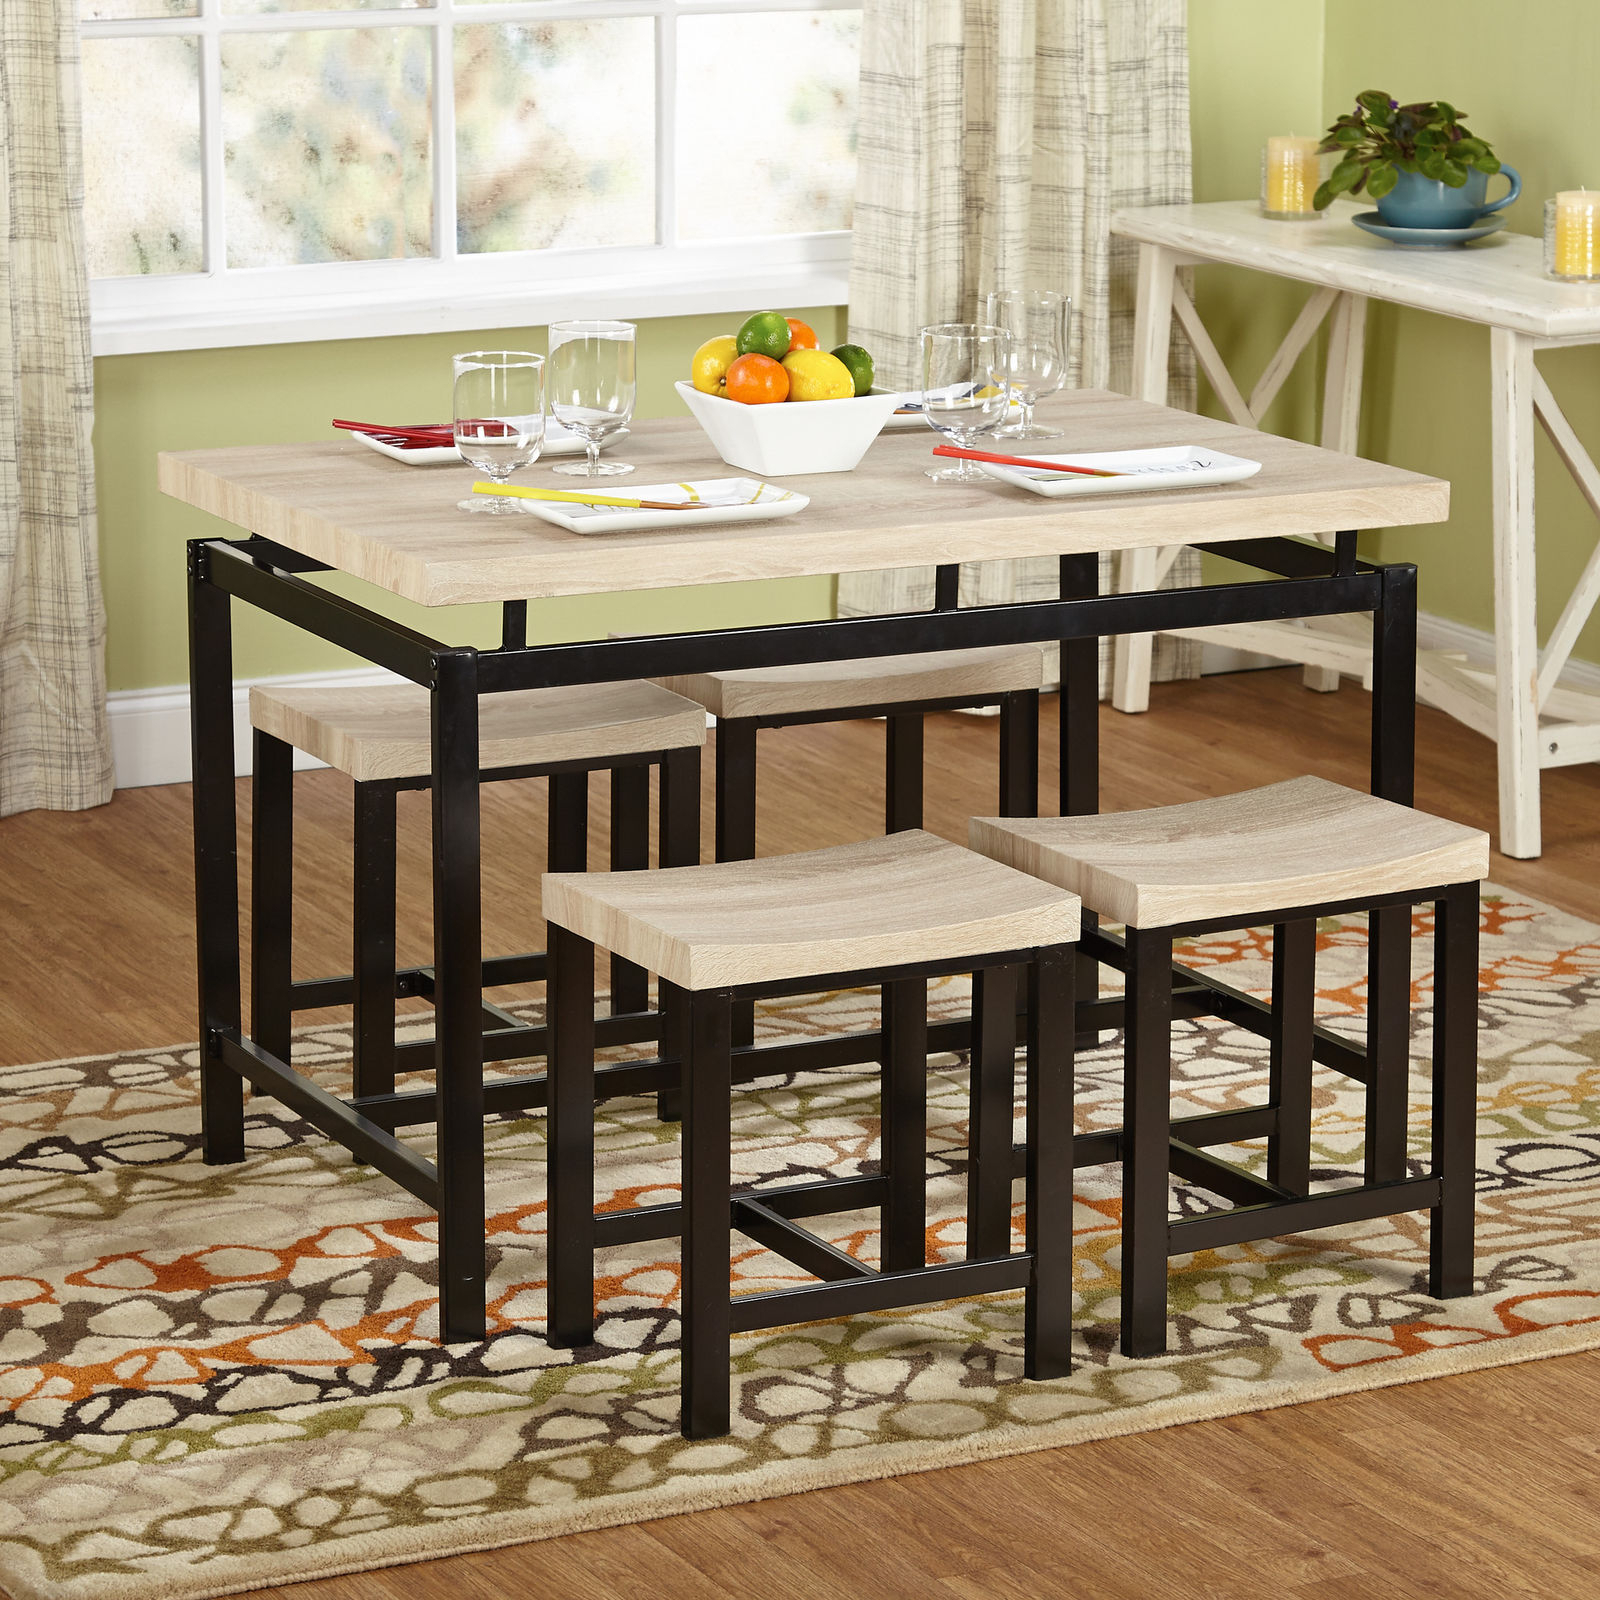 Bryson 5 Piece Dining Sets With Regard To Well Liked Wrought Studio Bryson 5 Piece Dining Set – Walmart (View 16 of 25)